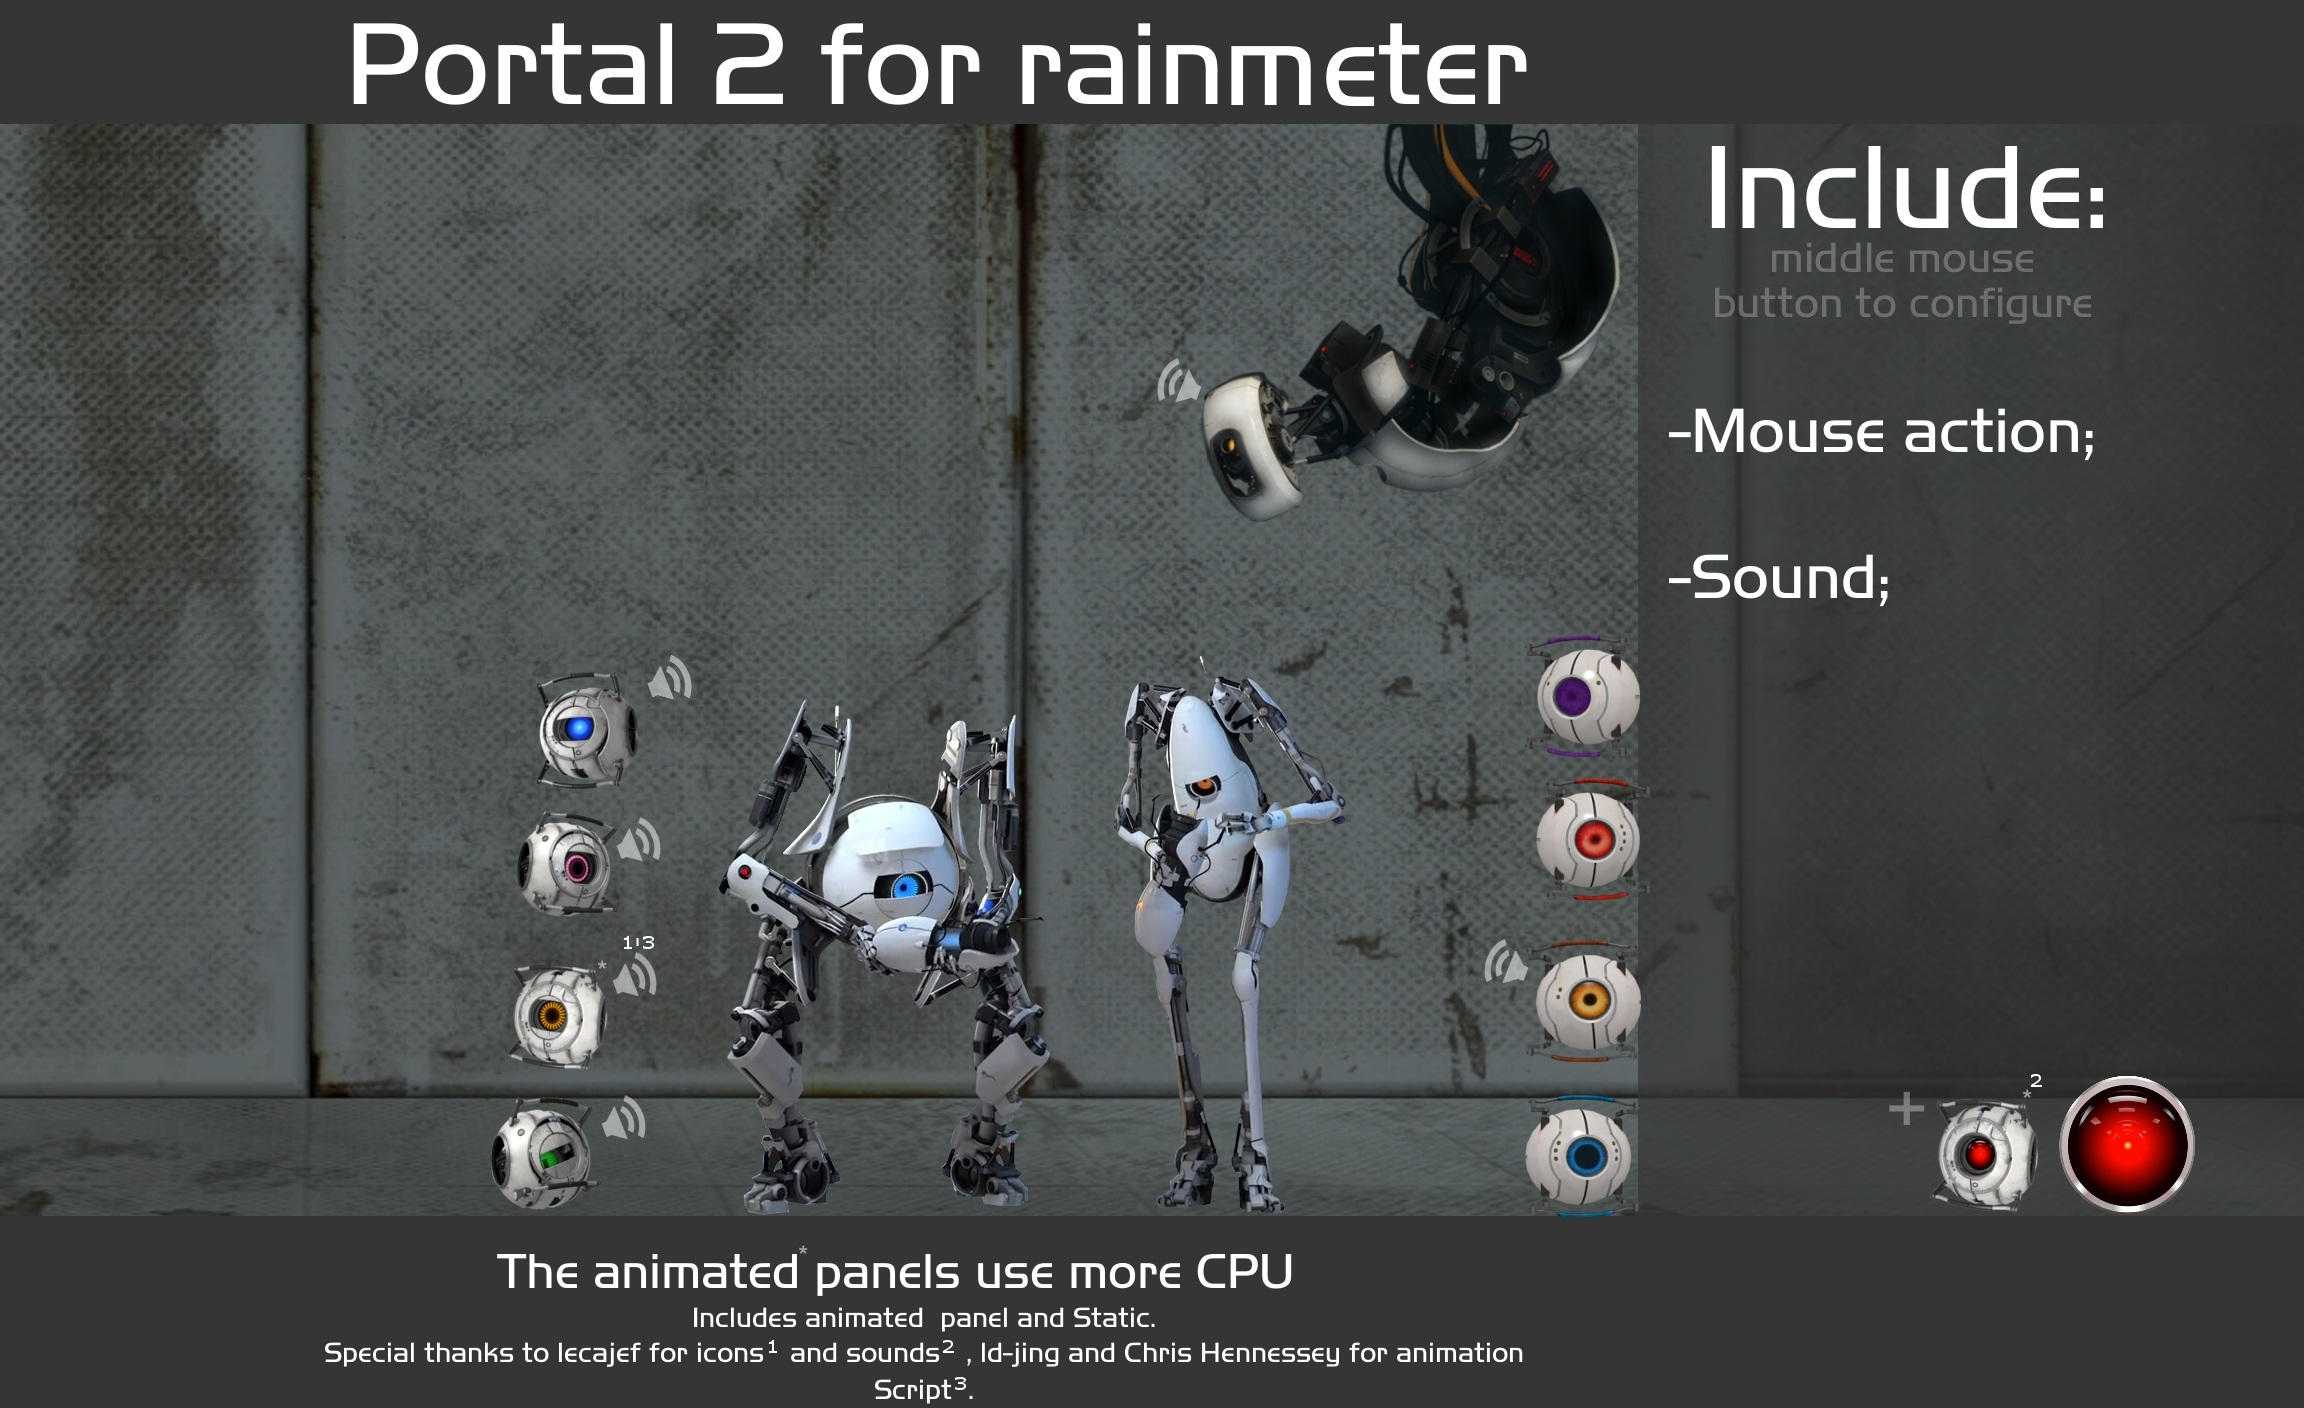 Portal 2 For Rainmeter By Pedro9666 Portal 2 For Rainmeter By Pedro9666